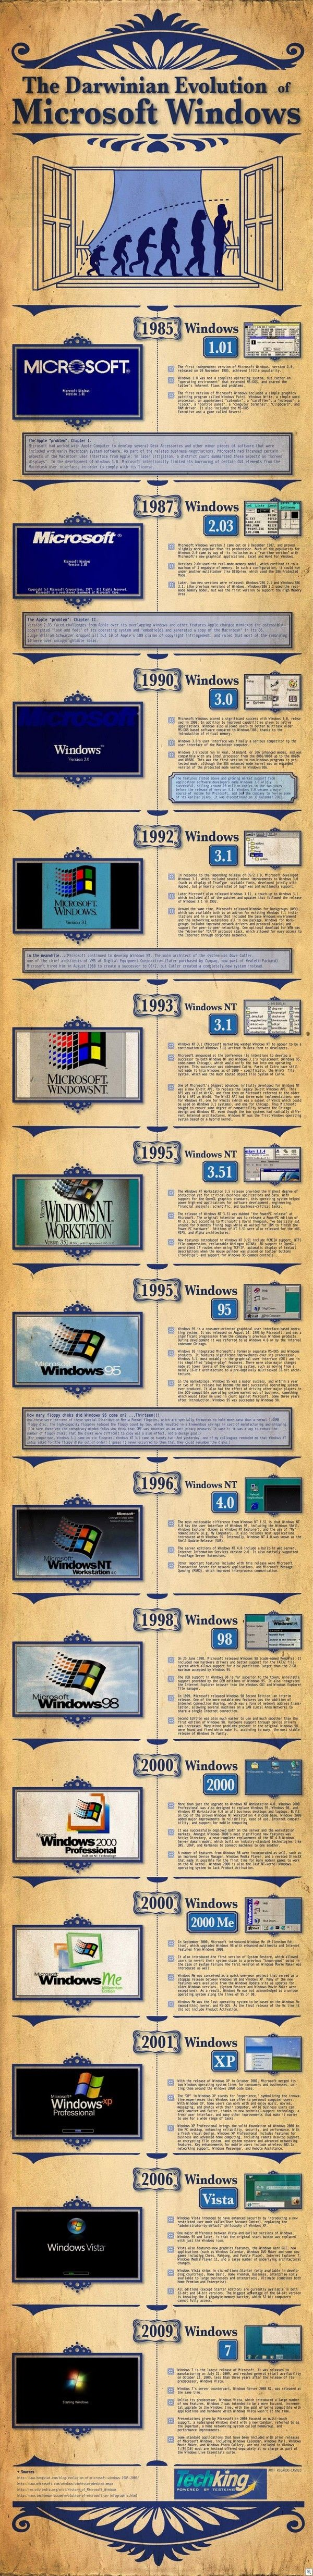 The Darwinian Evolution of Microsoft Windows - http://www.coolinfoimages.com/infographics/the-darwinian-evolution-of-microsoft-windows/